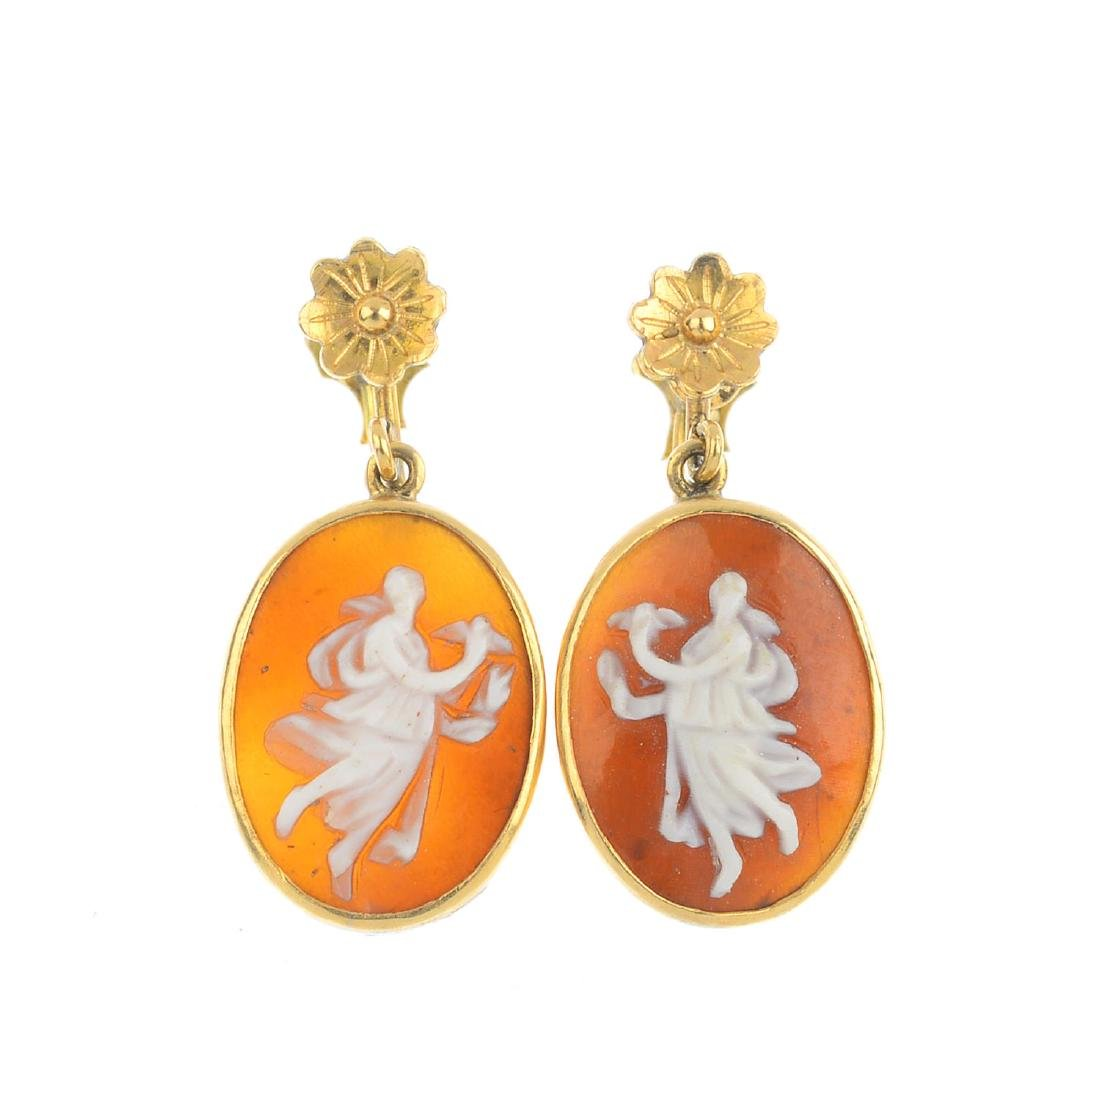 A pair of shell cameo earrings. Each designed as an